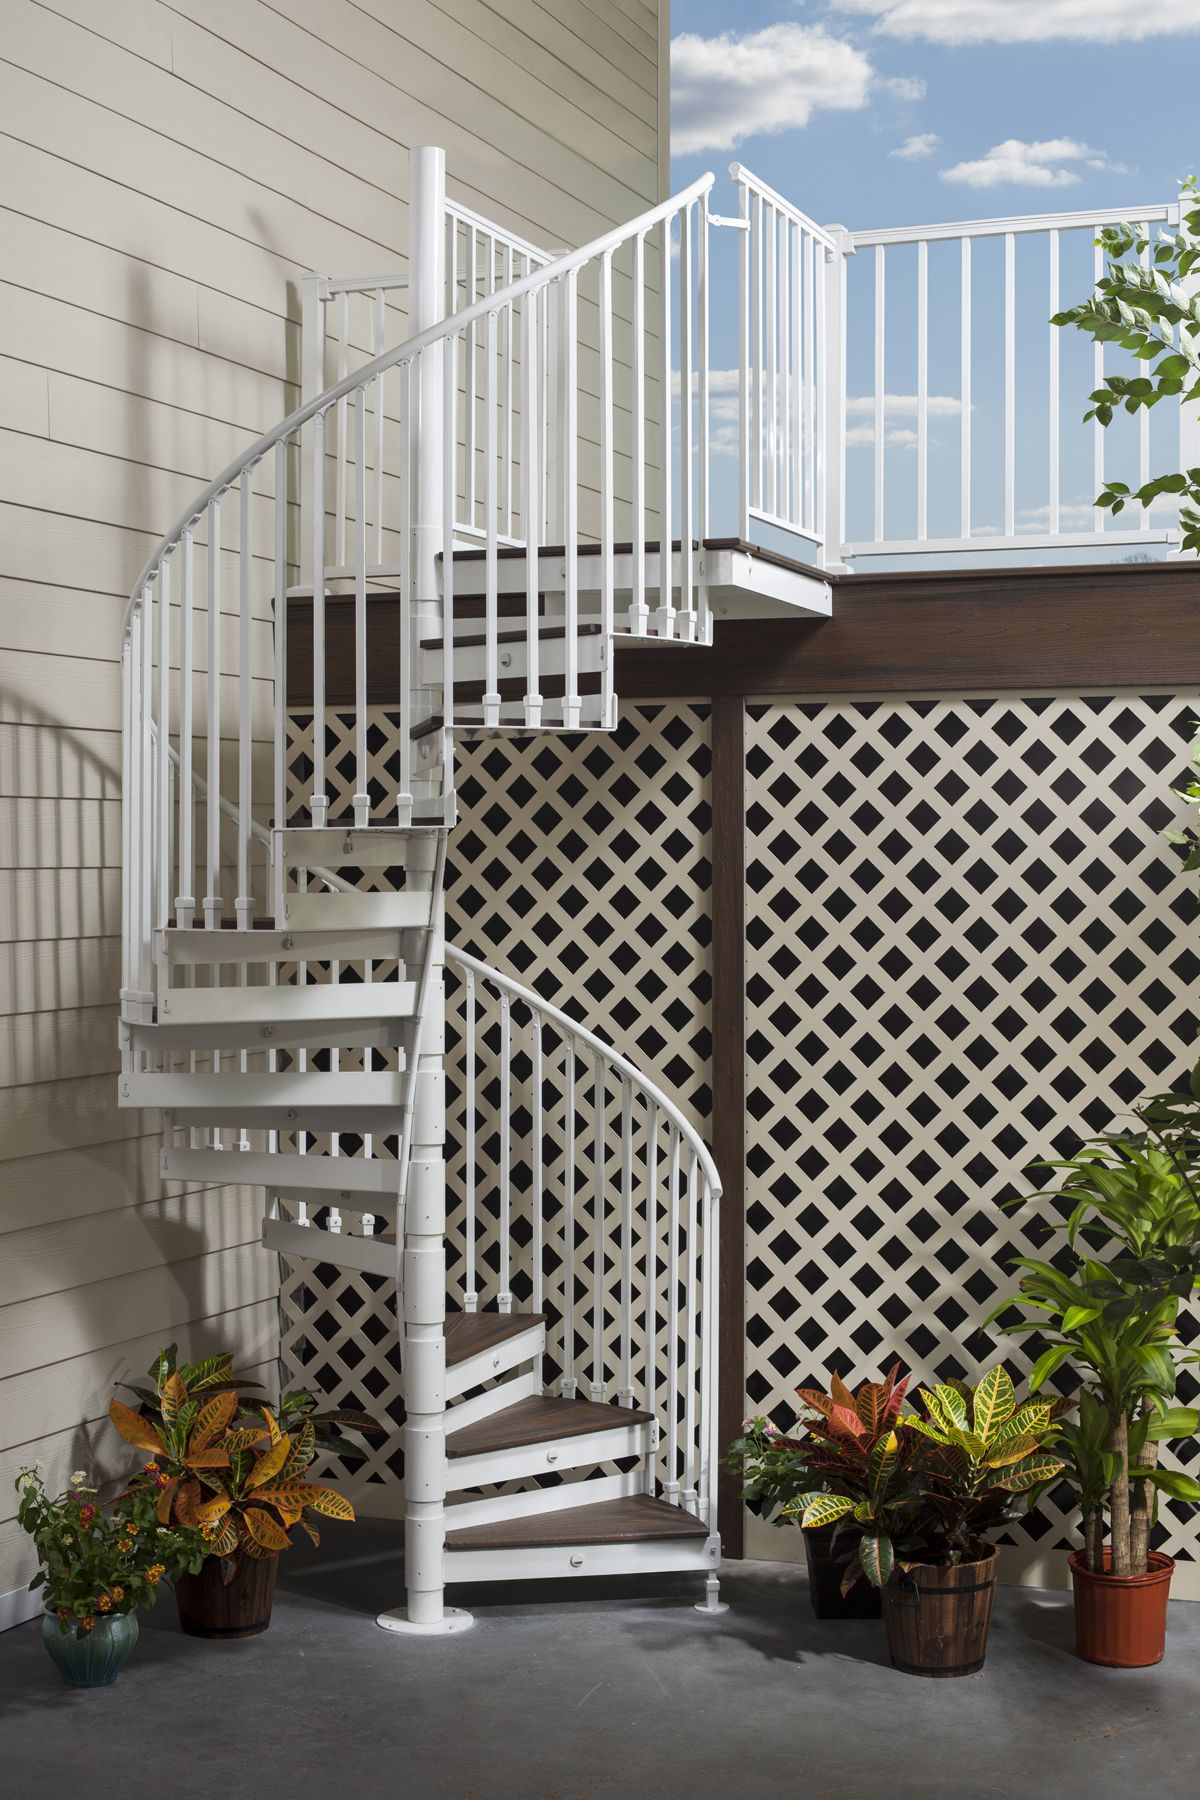 Best Short On Space Adding Trex Spiral Stairs To Your Deck 400 x 300